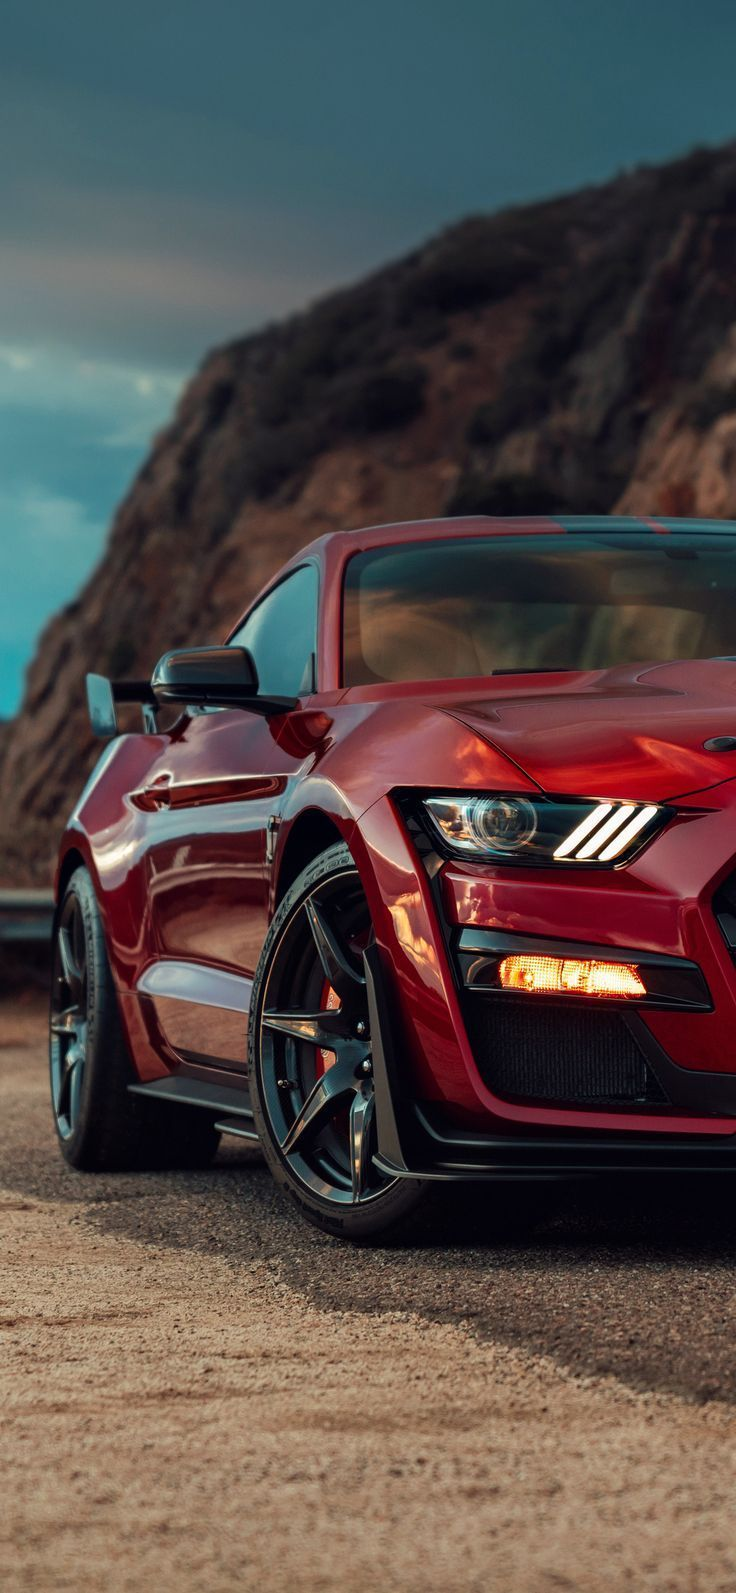 2020 Ford Mustang Shelby Gt500 Ford Gt500 Mustang Shelby Mustangclassicca Ford Gt500 Must Shelby Mustang Mustang Autos Ford Mustang Shelby Gt500